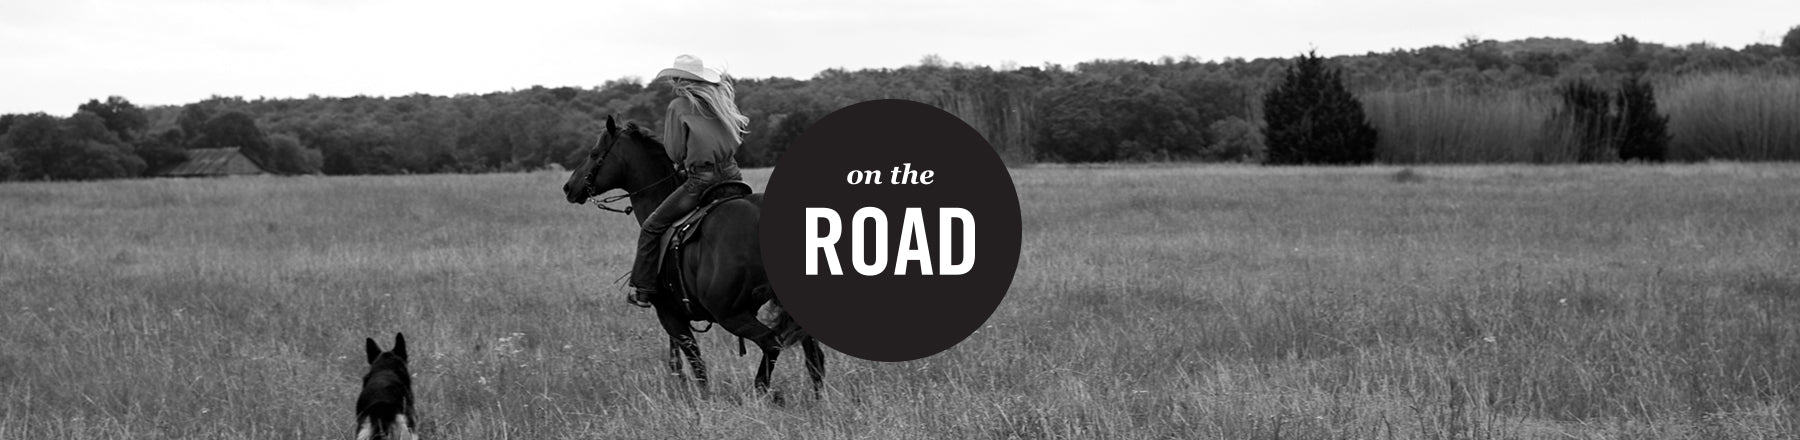 The Blog : On the Road